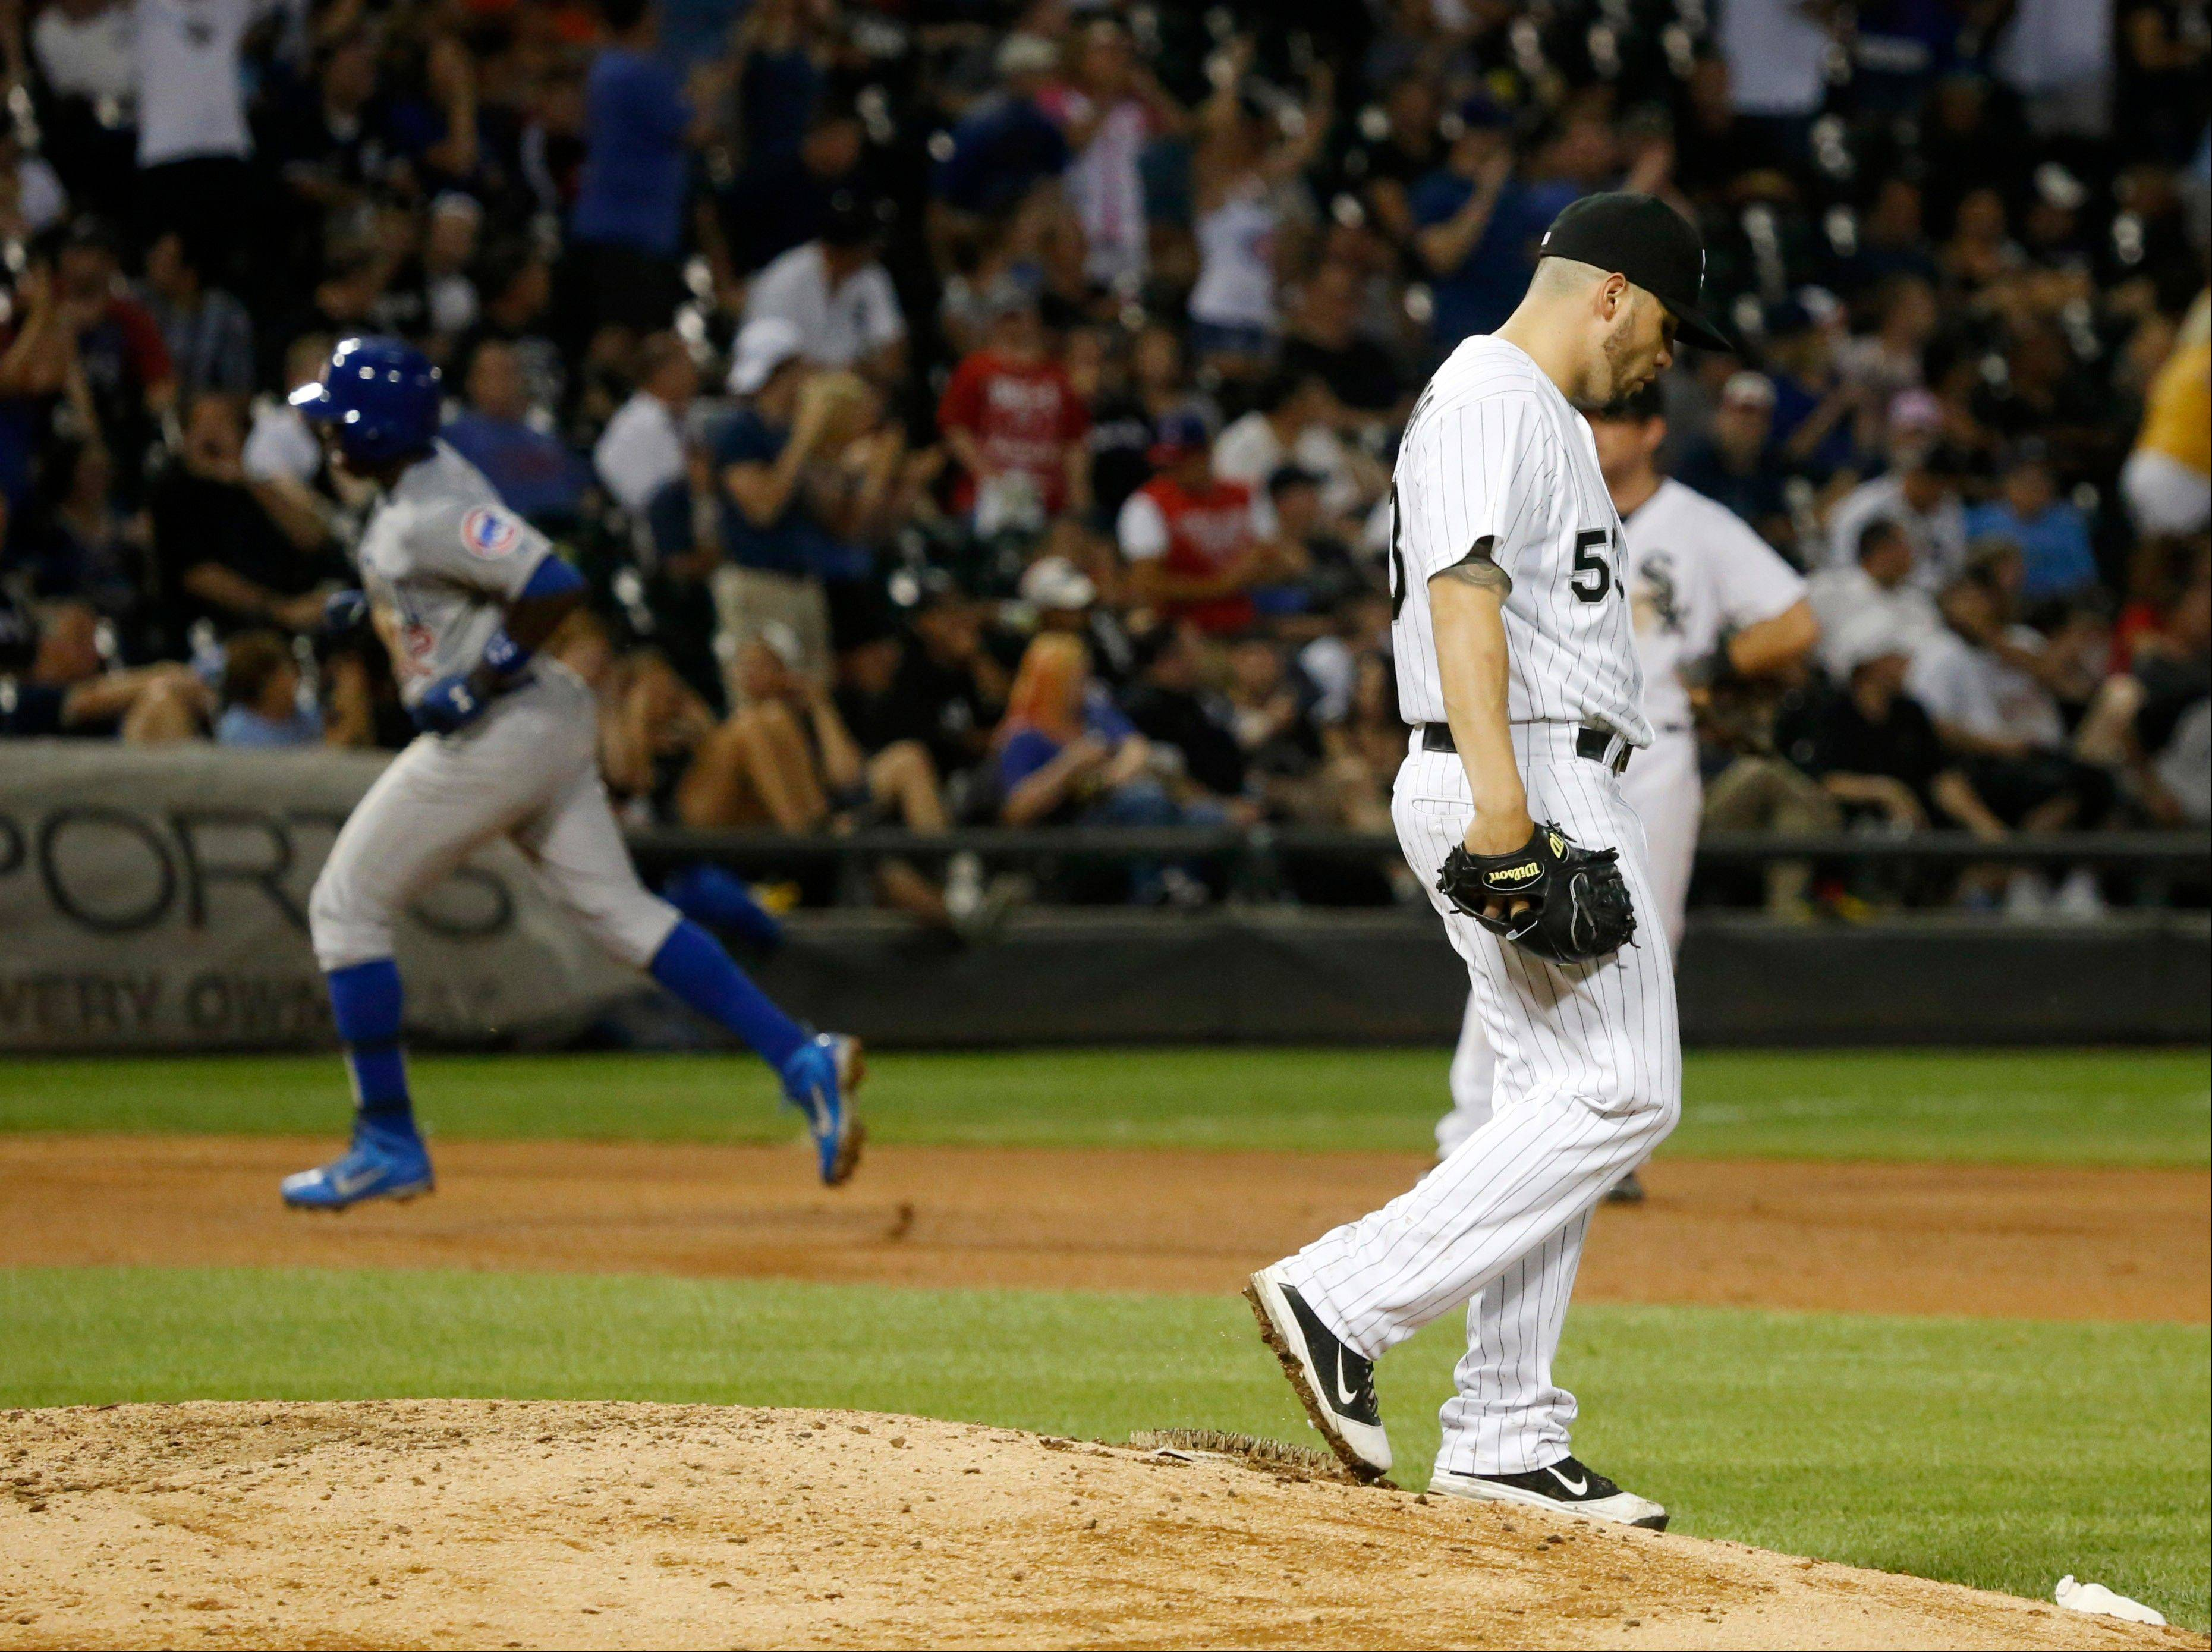 White Sox starting pitcher Hector Santiago, right, walks off the mound after giving up a homer to Alfonso Soriano of the Cubs Monday at U.S. Cellular Field.